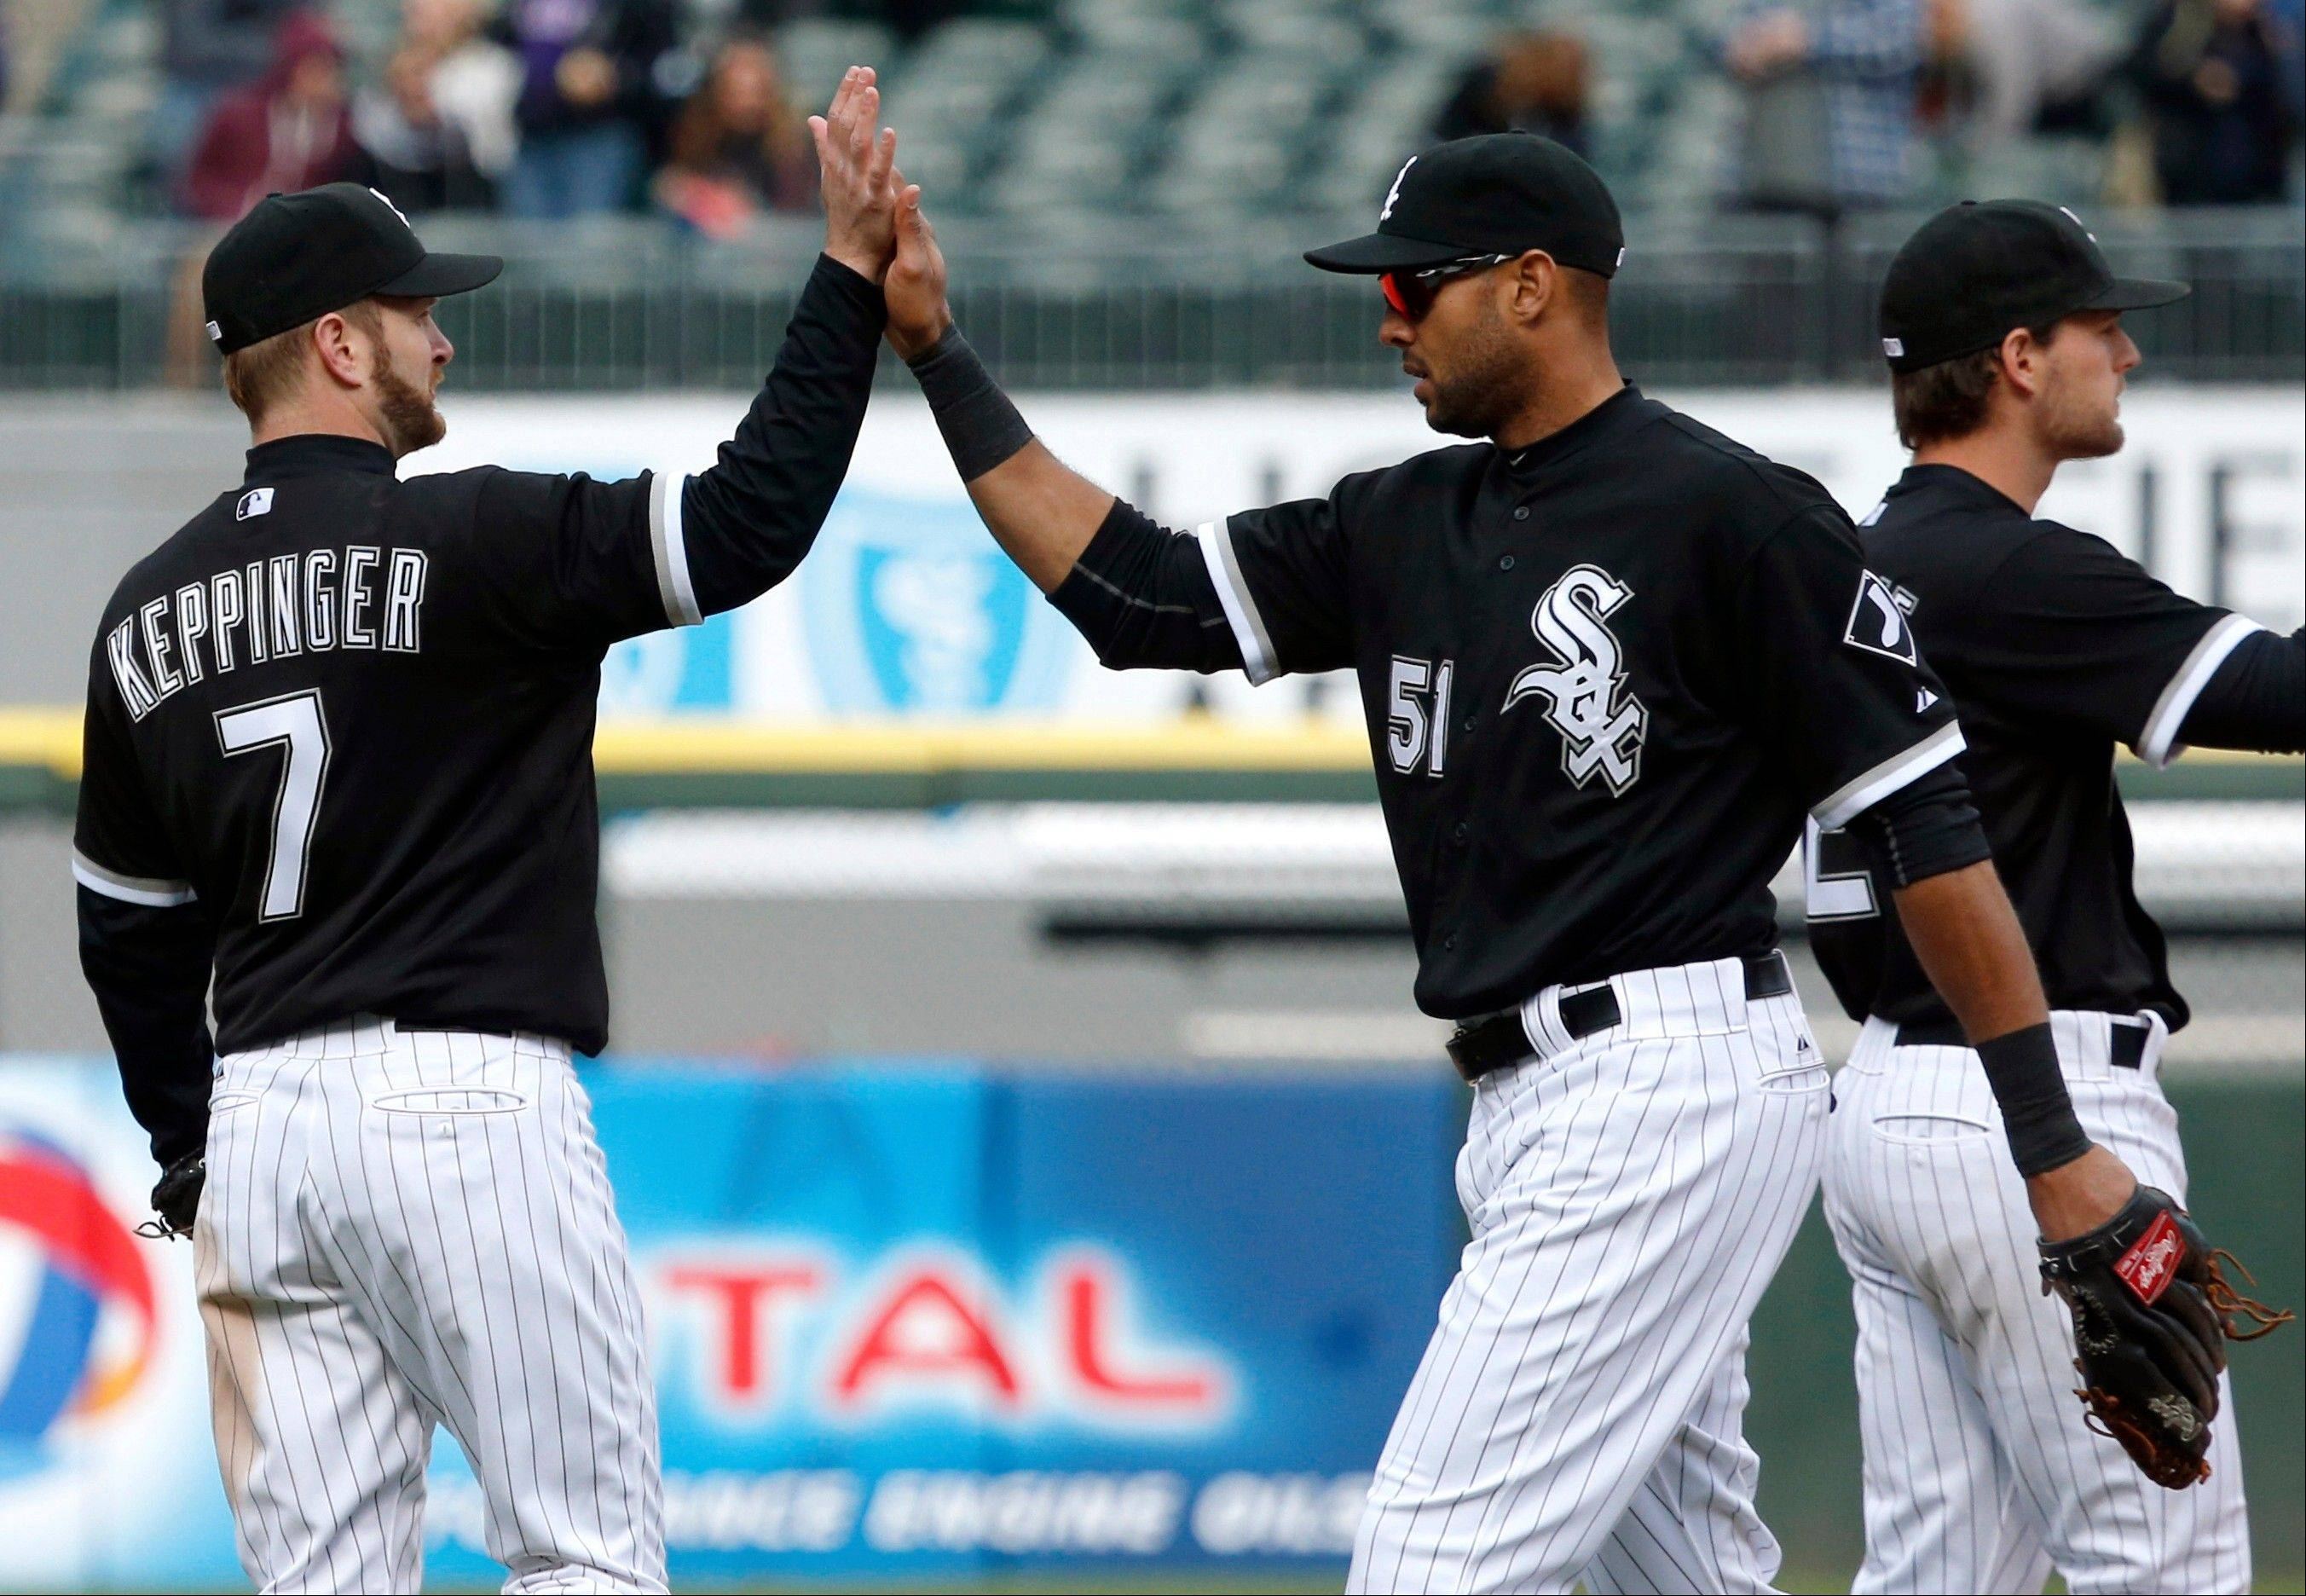 Chicago White Sox third baseman Jeff Keppinger (7) celebrates with right fielder Alex Rios (51) after their 3-2 win over the Cleveland Indians in a baseball game, Wednesday, April 24, 2013, in Chicago. (AP Photo/Charles Rex Arbogast)